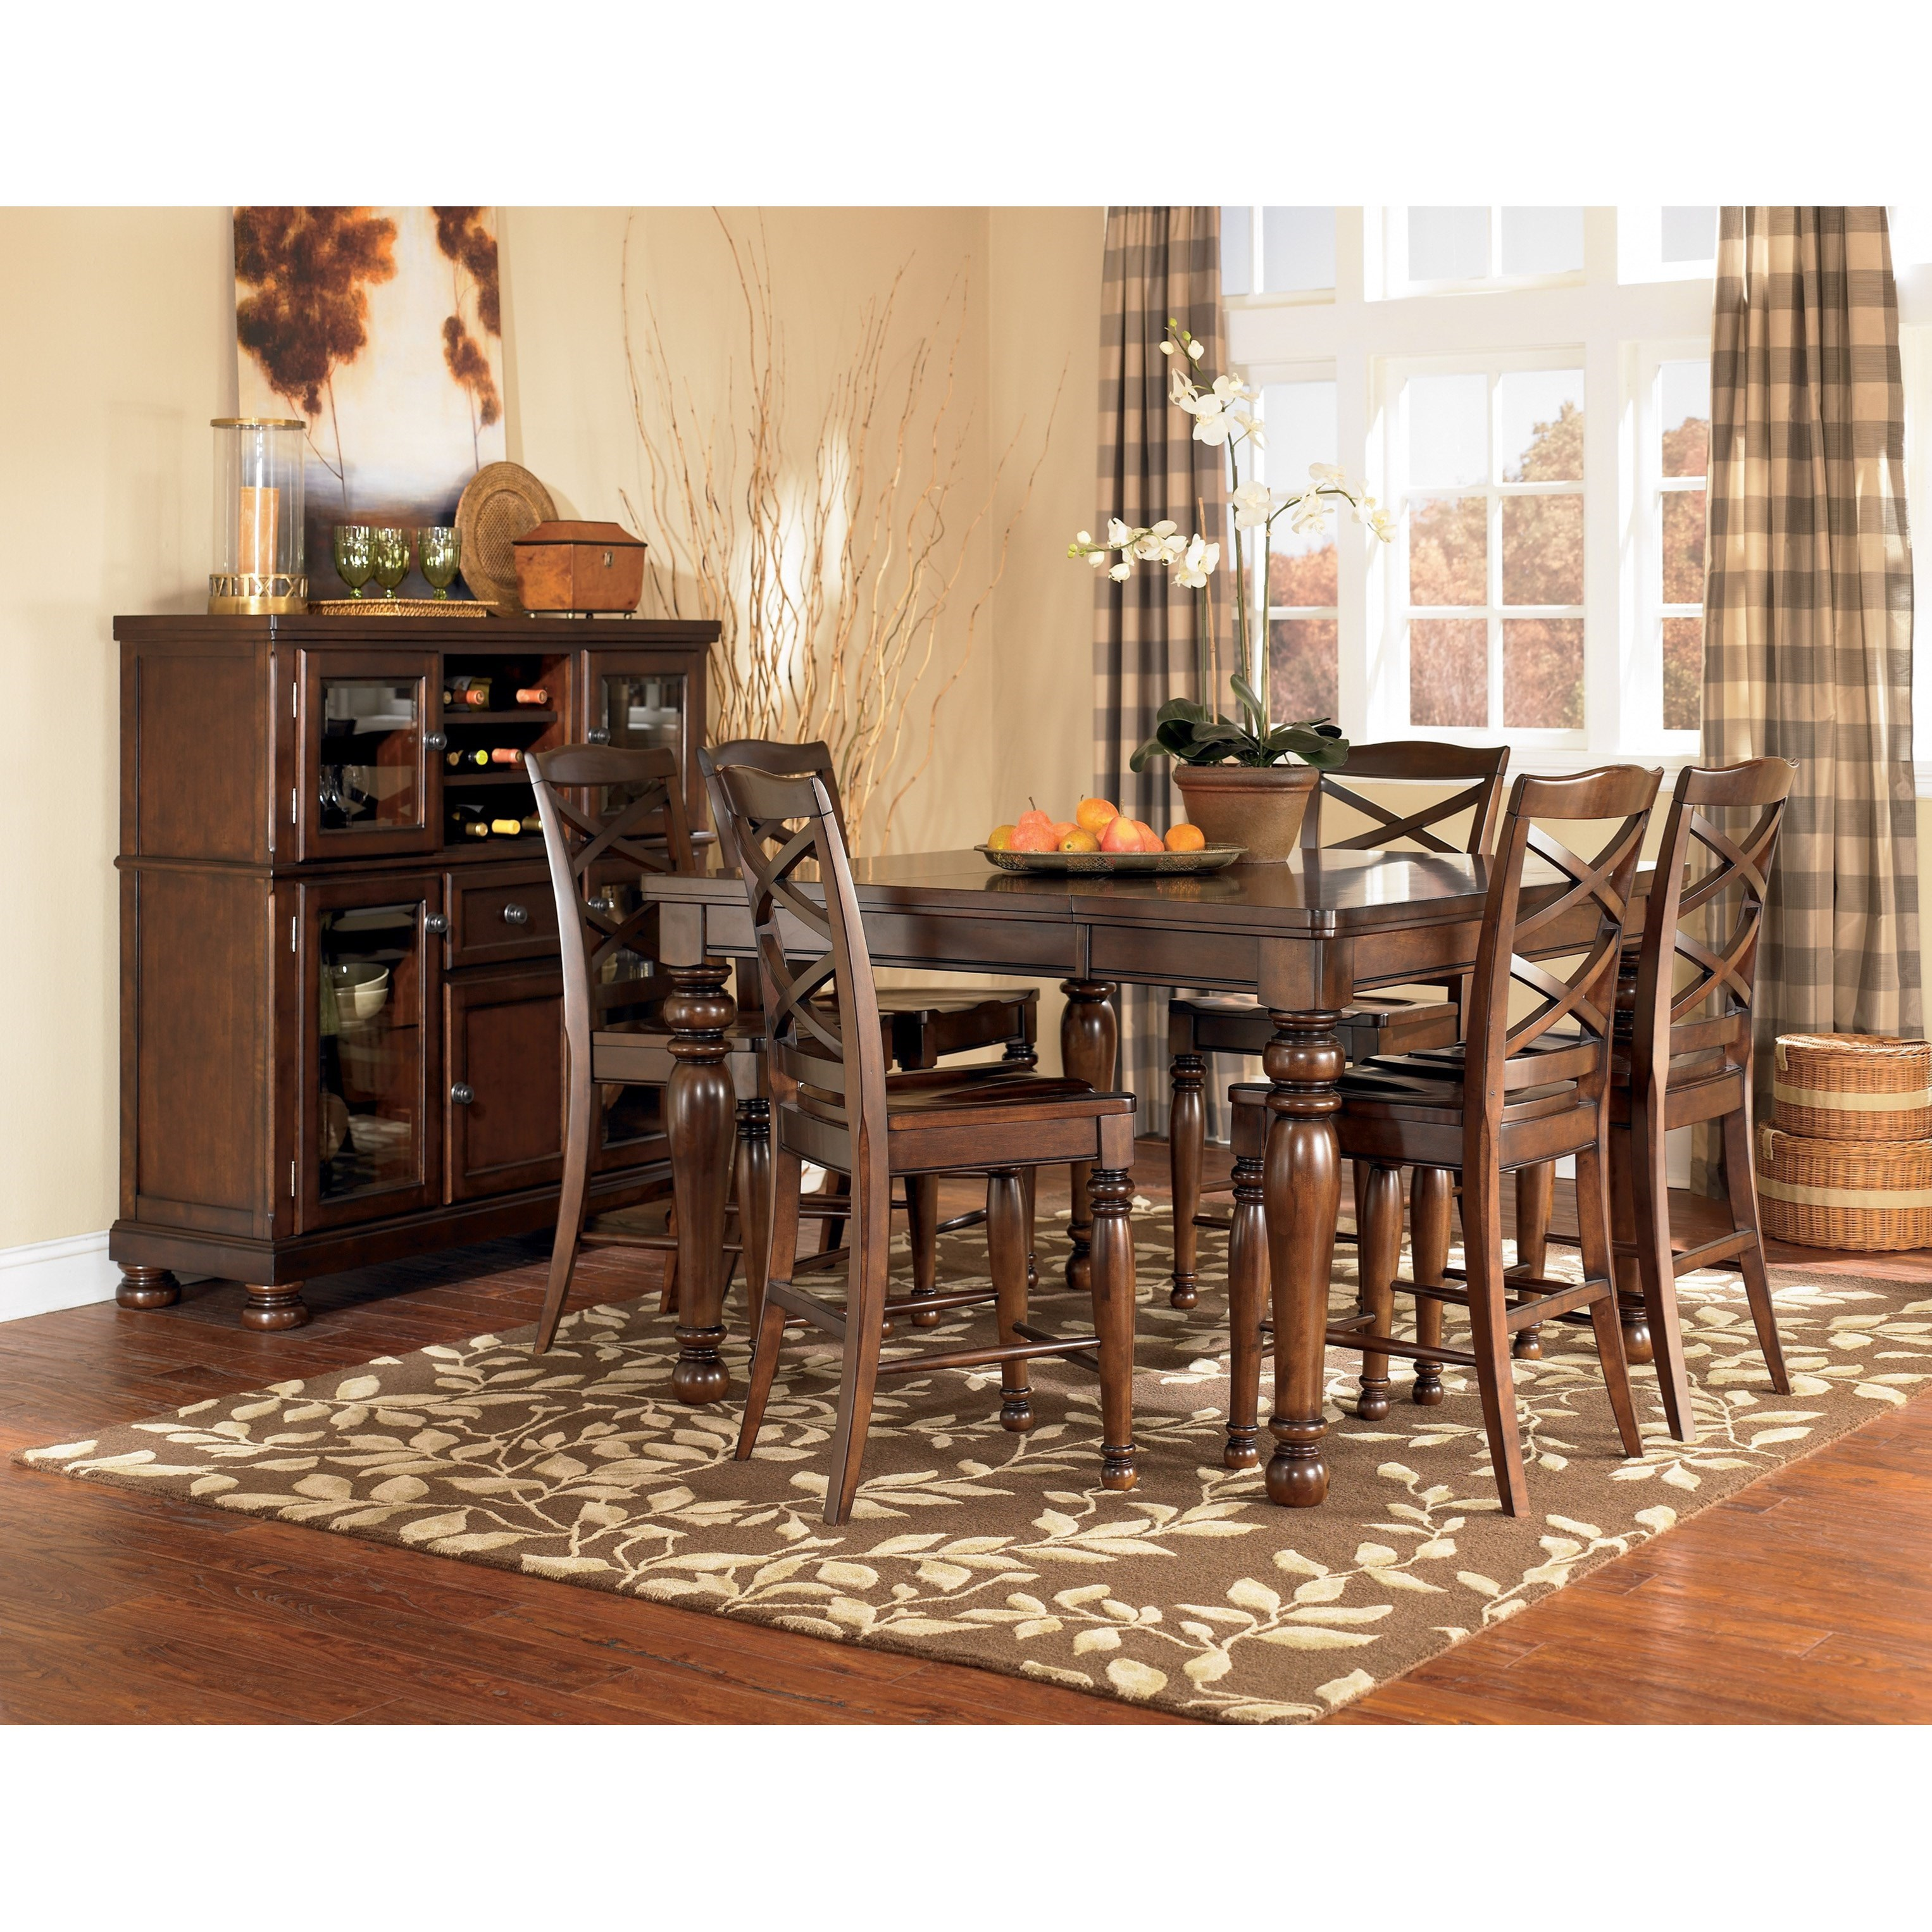 Ashley Furniture Porter Casual Dining Room Group Fashion Furniture Casual Dining Room Groups